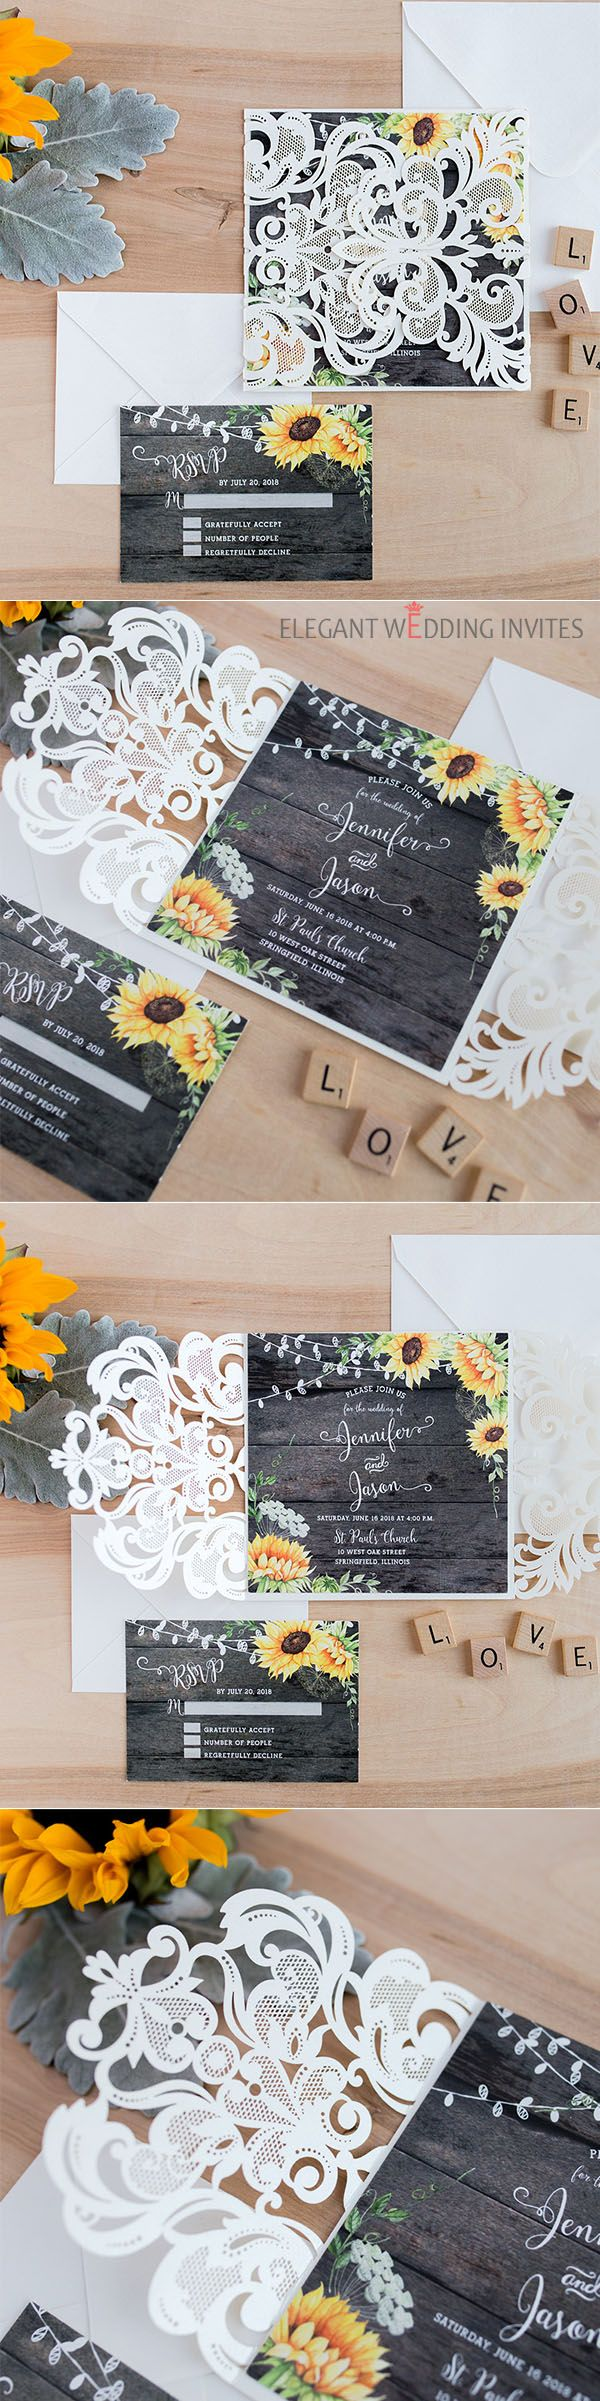 sunflower wedding invitations printable%0A Rustic sunflower wedding invitation on barn wood background  wedding  invitation rustic